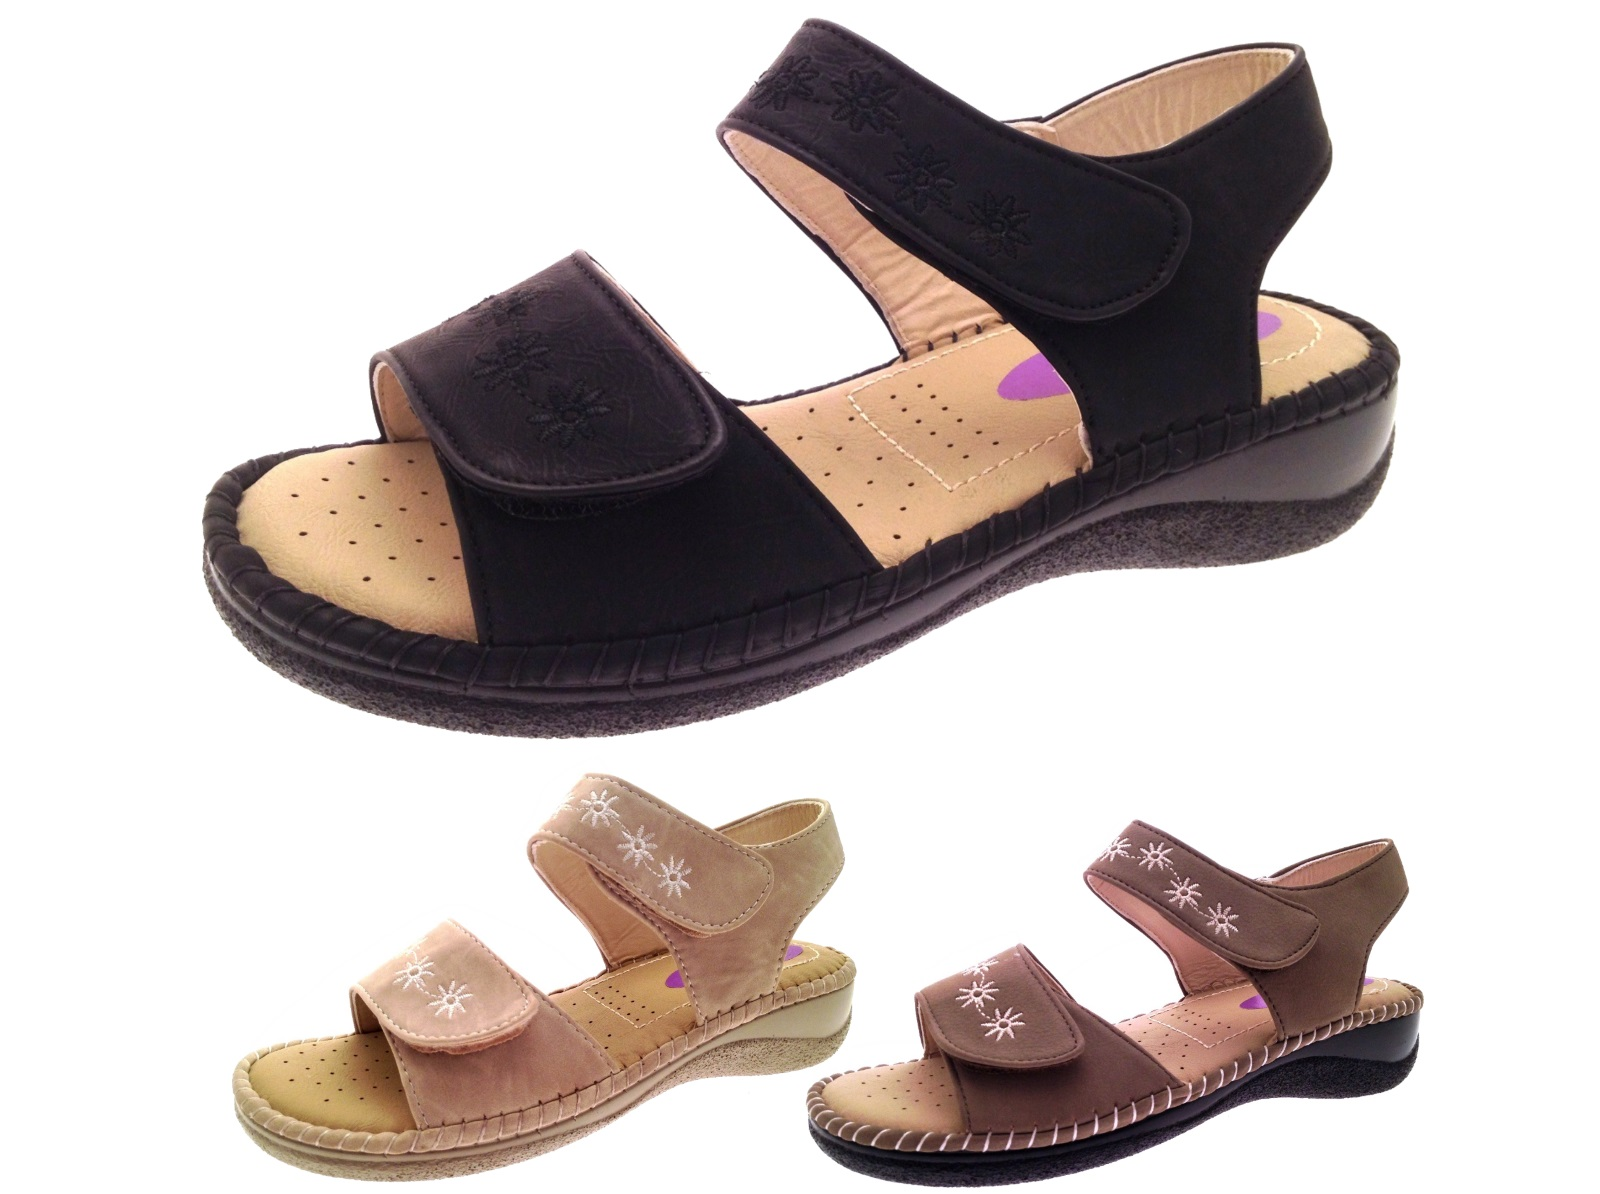 Womens Summer Sandals Cushioned Wide Adjustable Straps ...